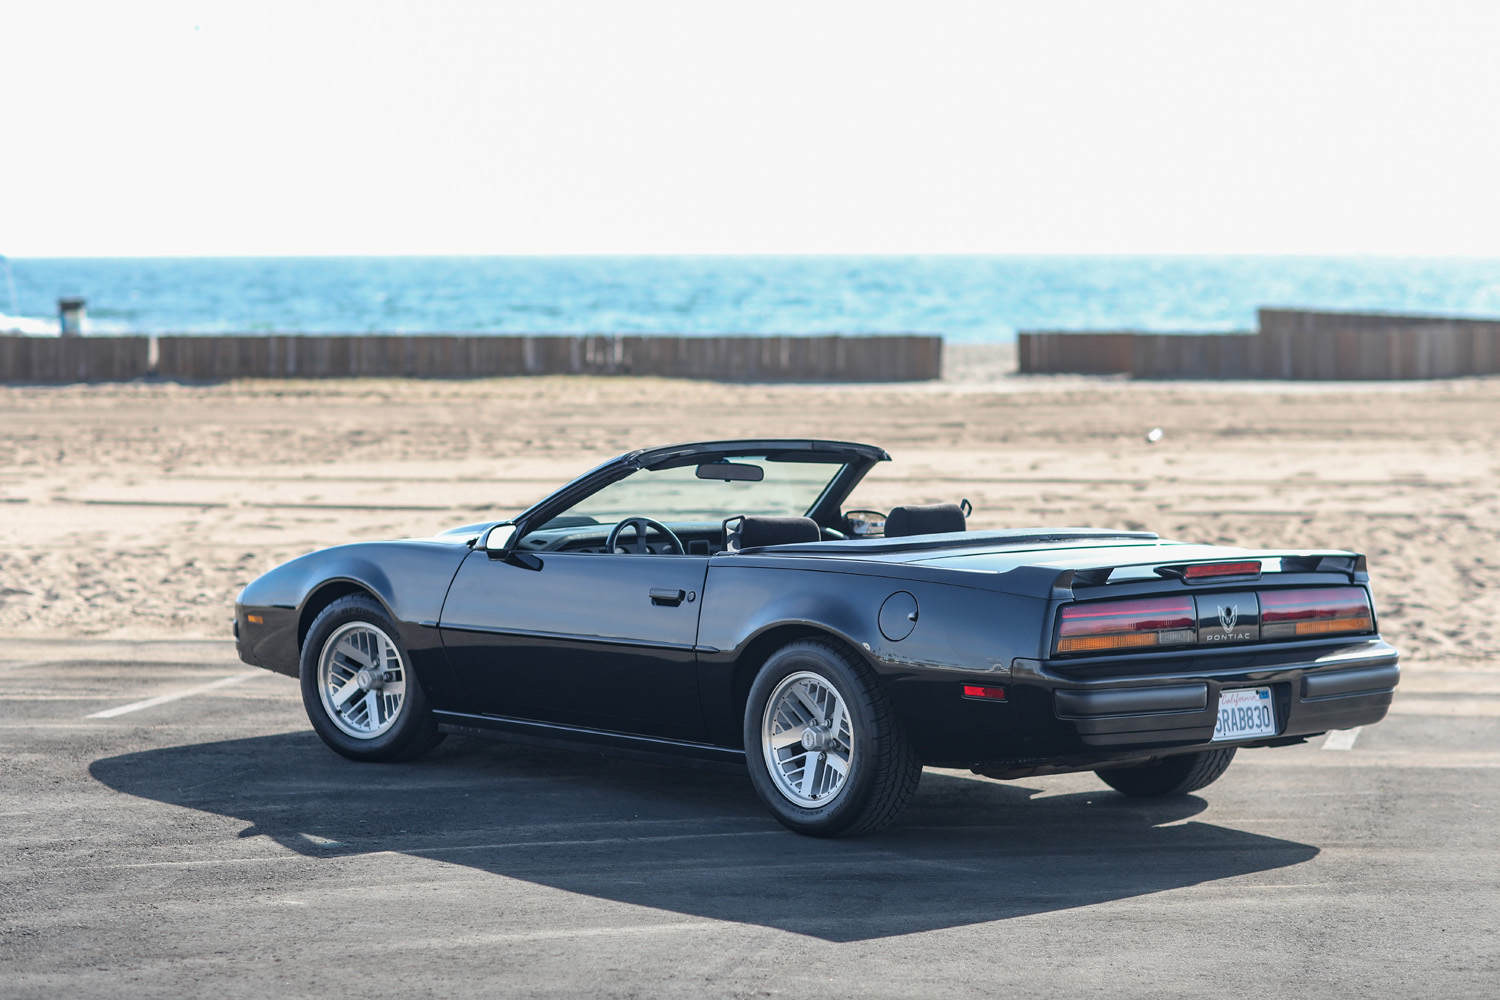 1989 Firebird Formula convertible top down